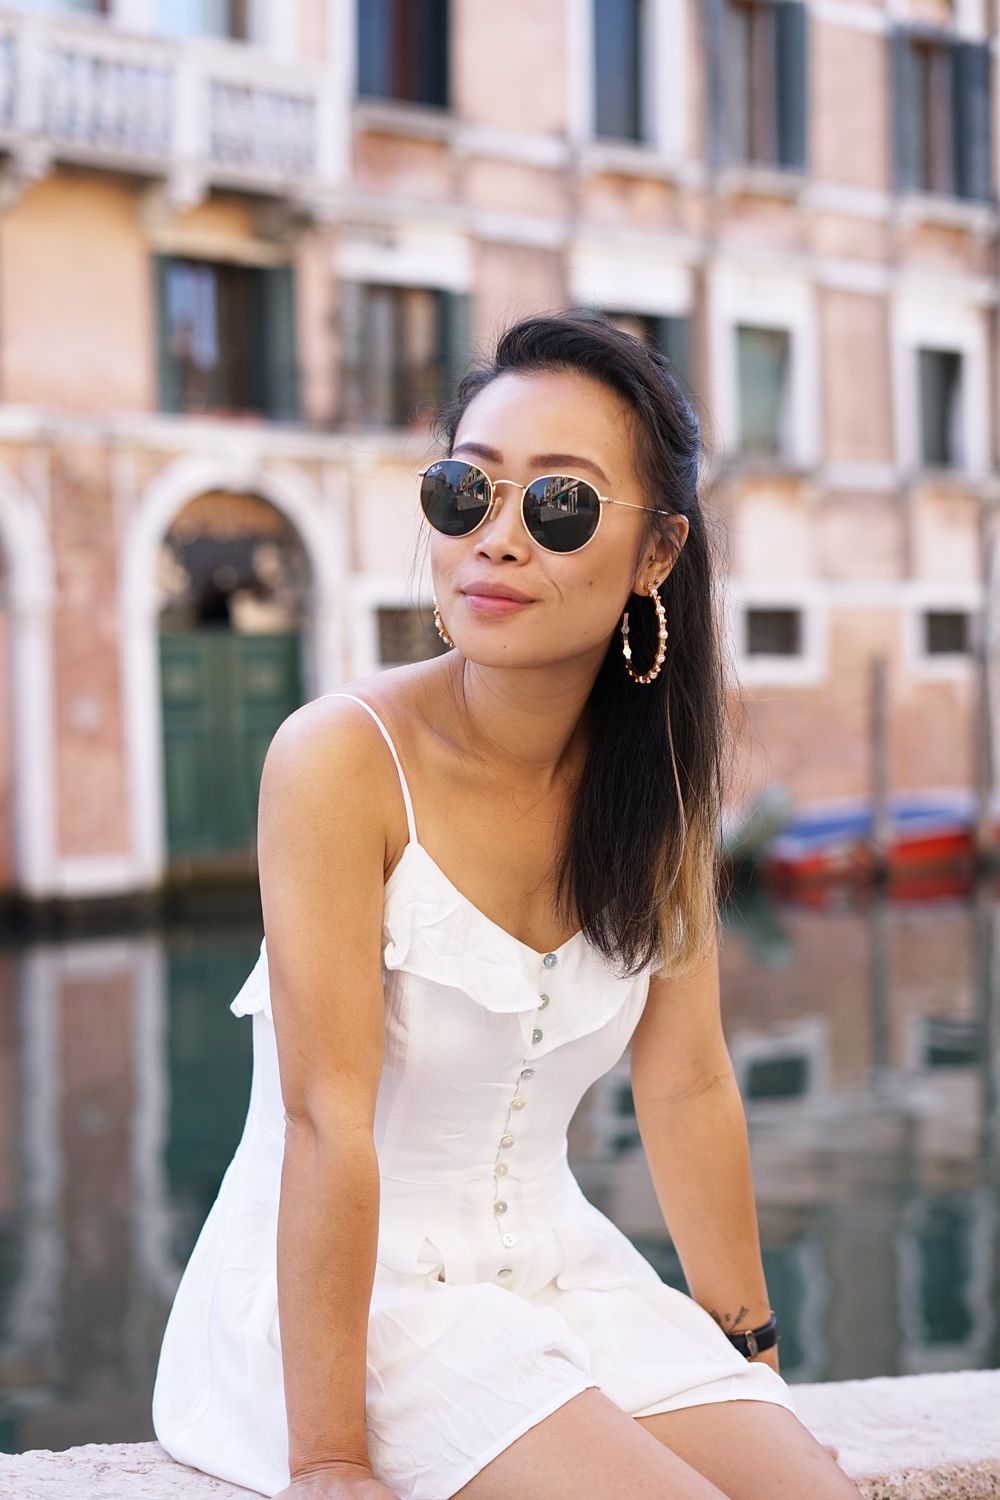 03venice-canal-italy-travel-ootd